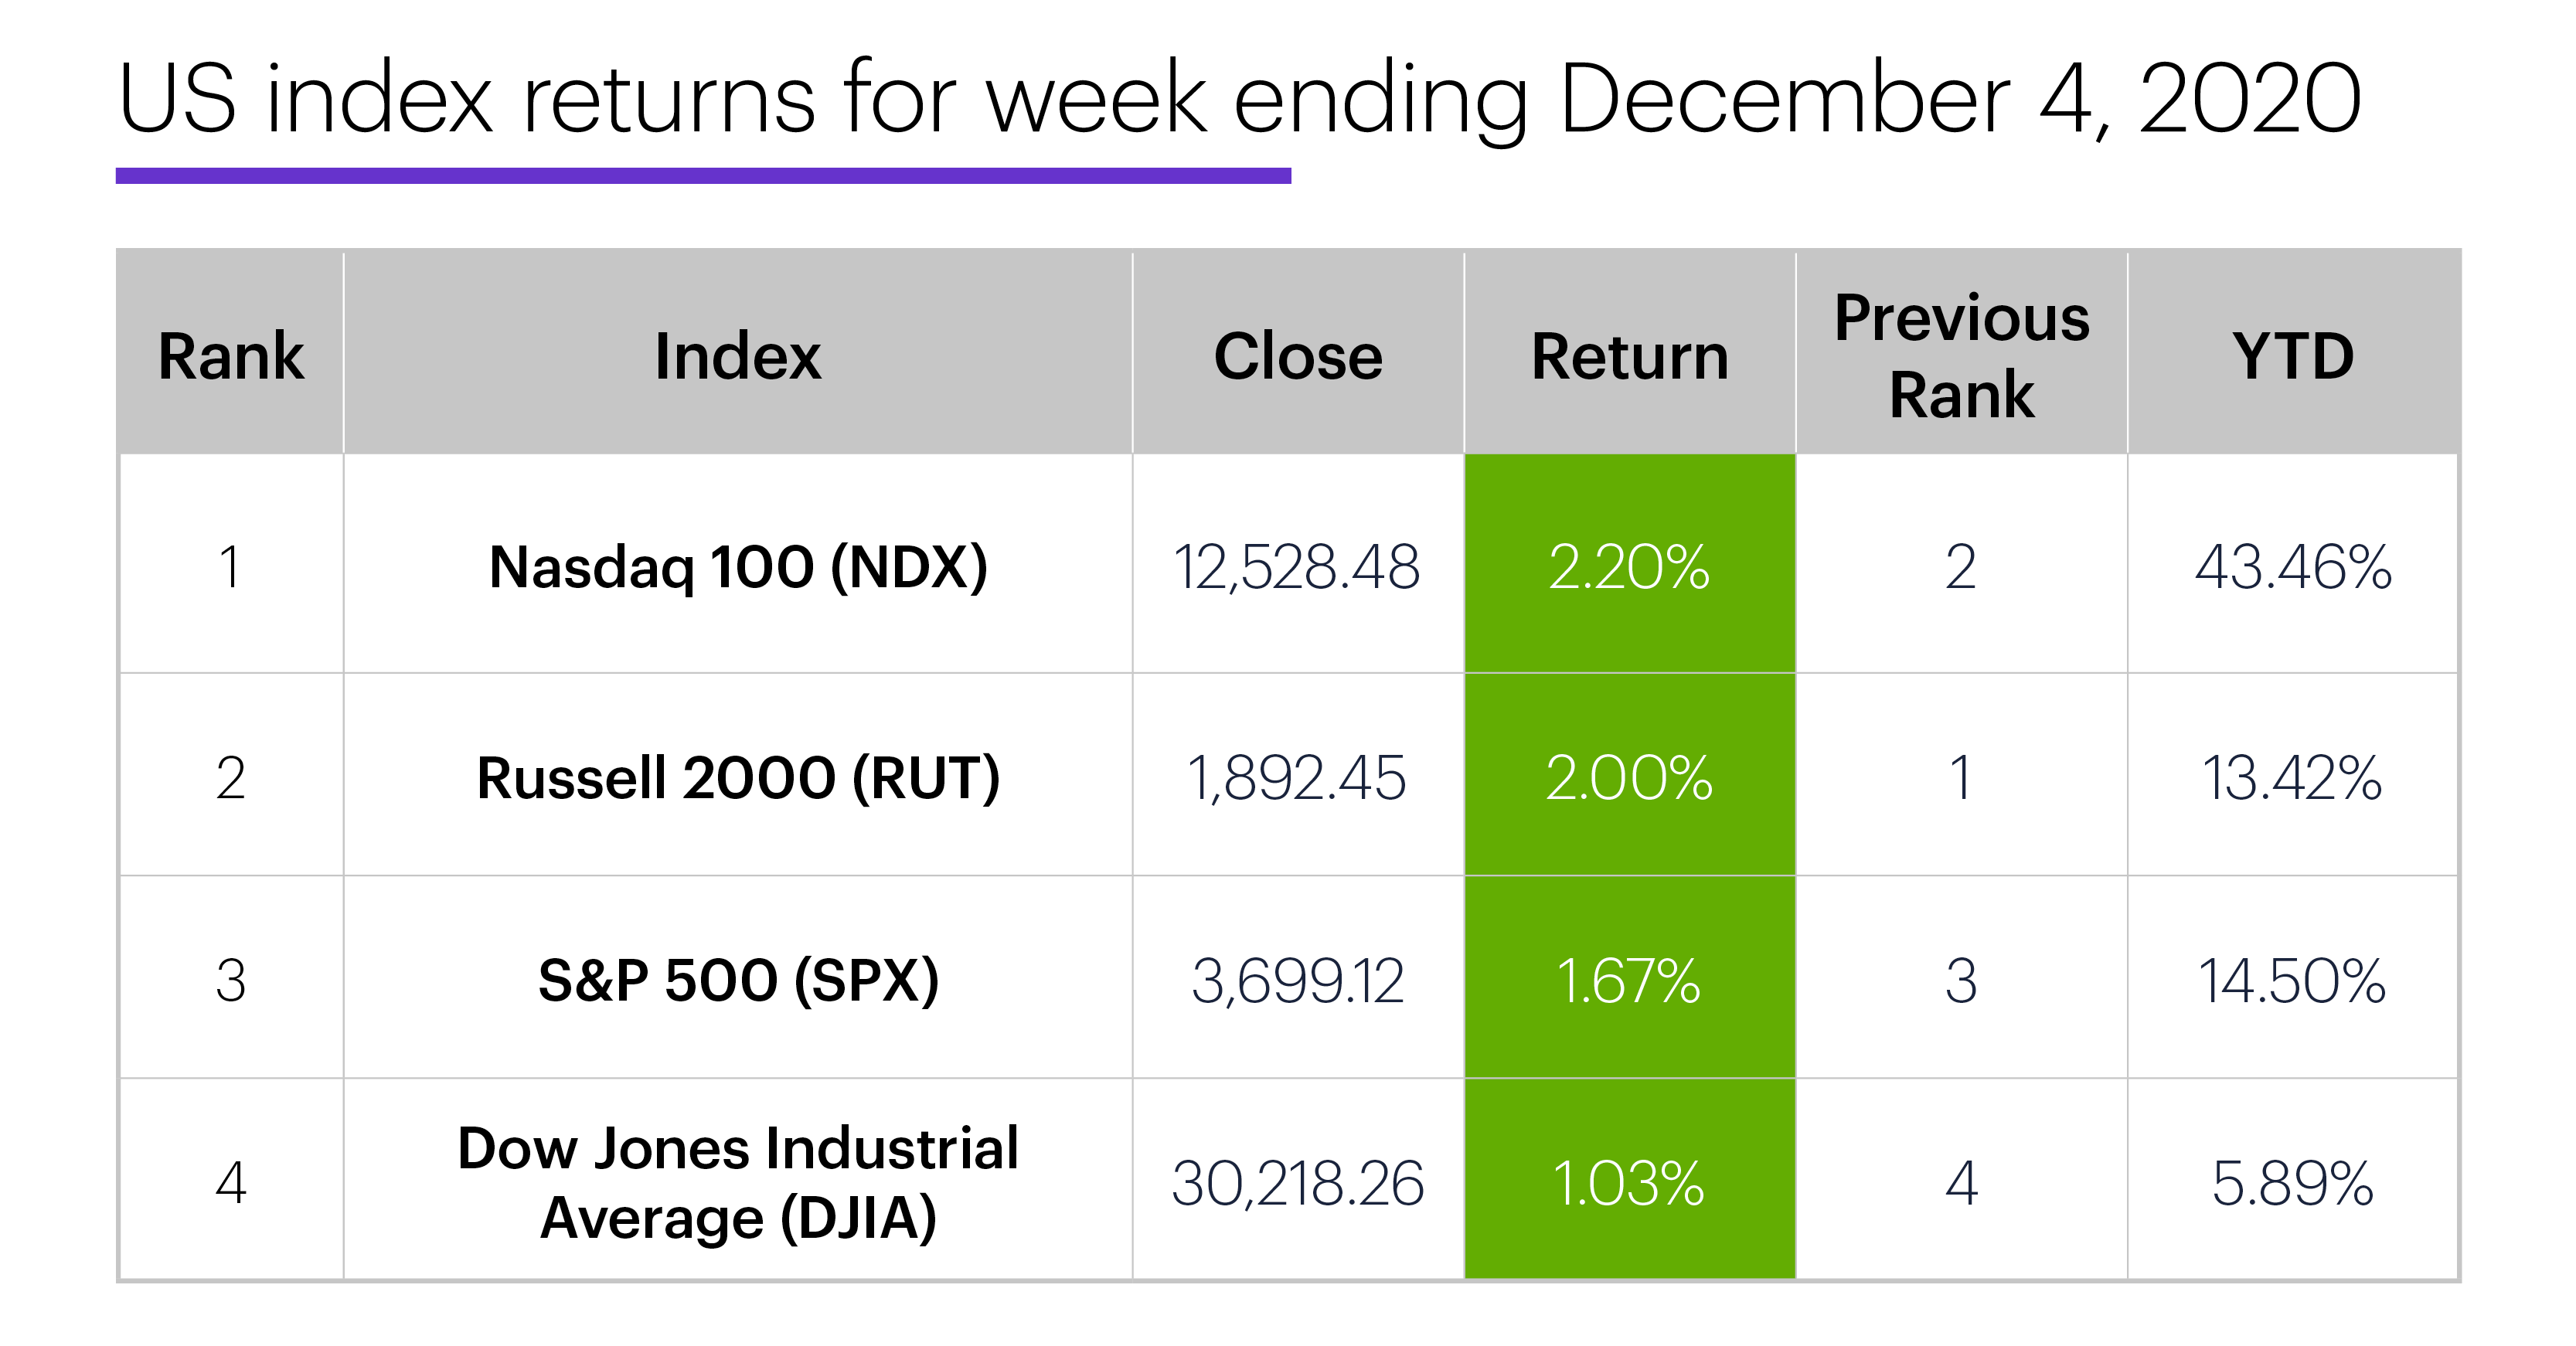 US stock index performance table for week ending 12/4/20. S&P 500 (SPX), Nasdaq 100 (NDX), Russell 2000 (RUT), Dow Jones Industrial Average (DJIA).